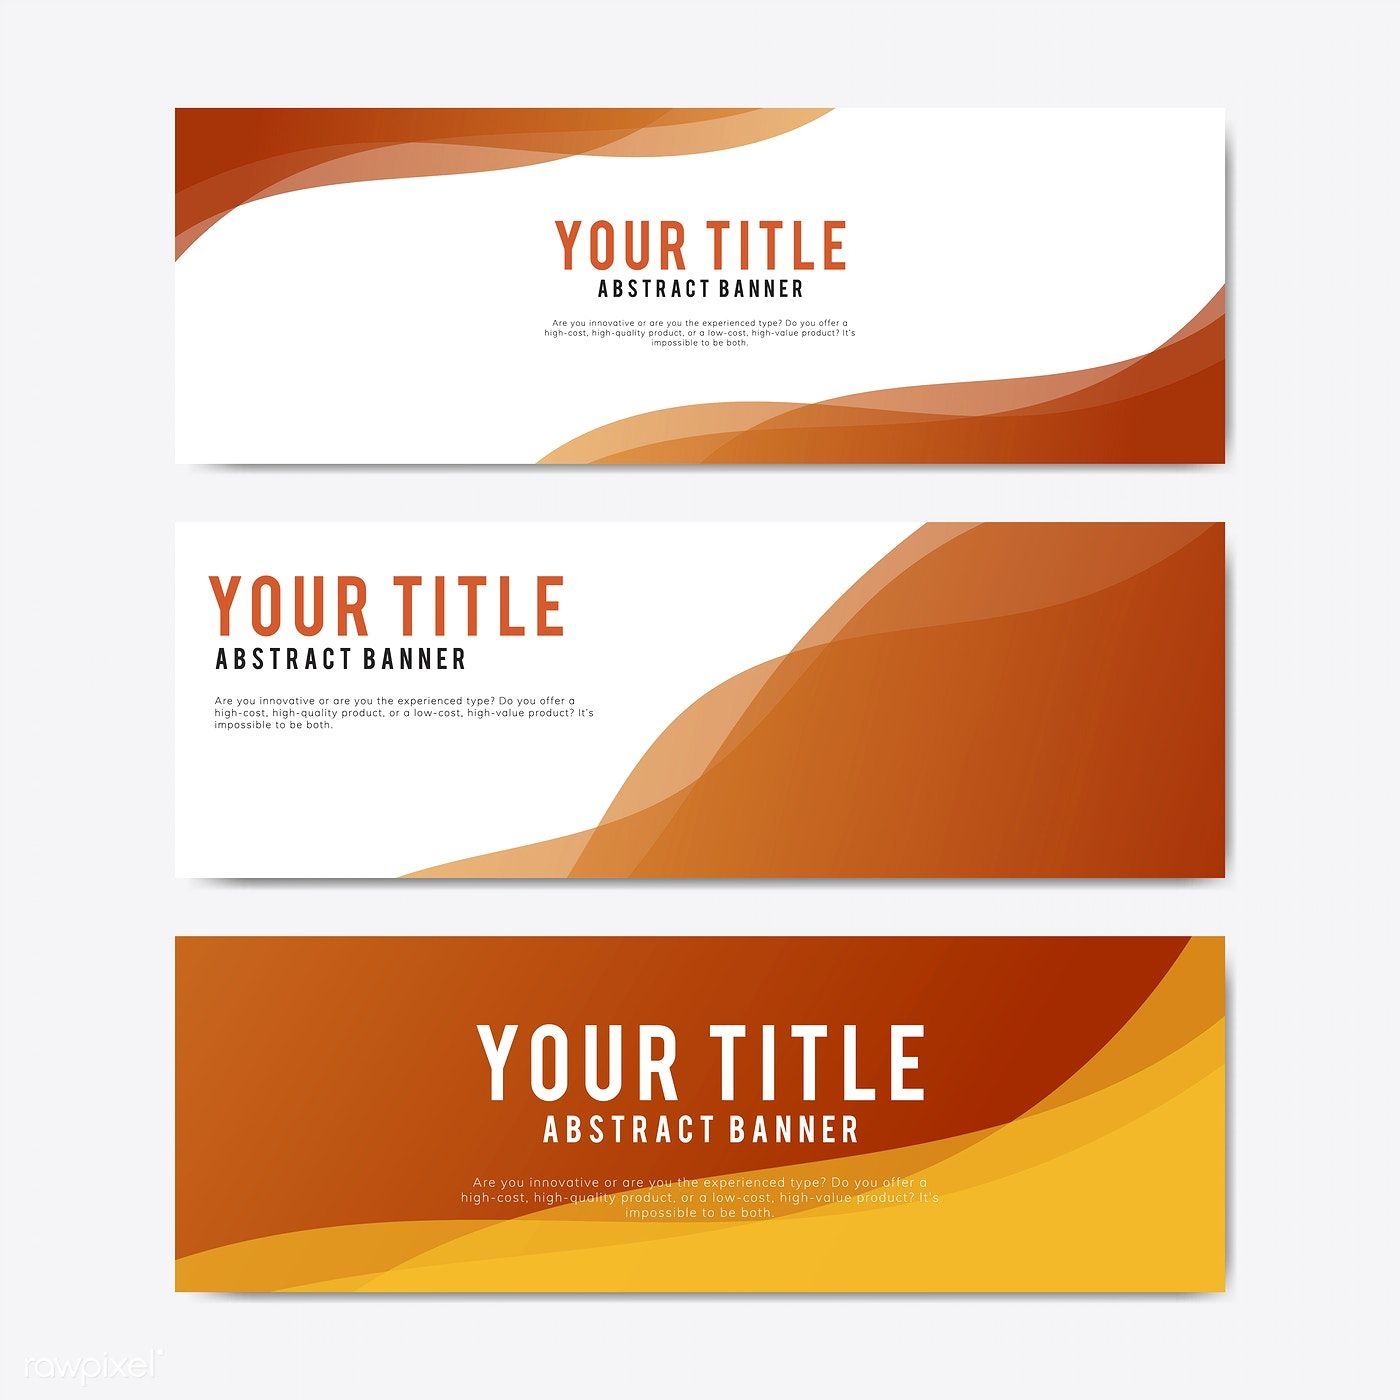 Lapel Pins Colorful And Abstract Banner Design Templates